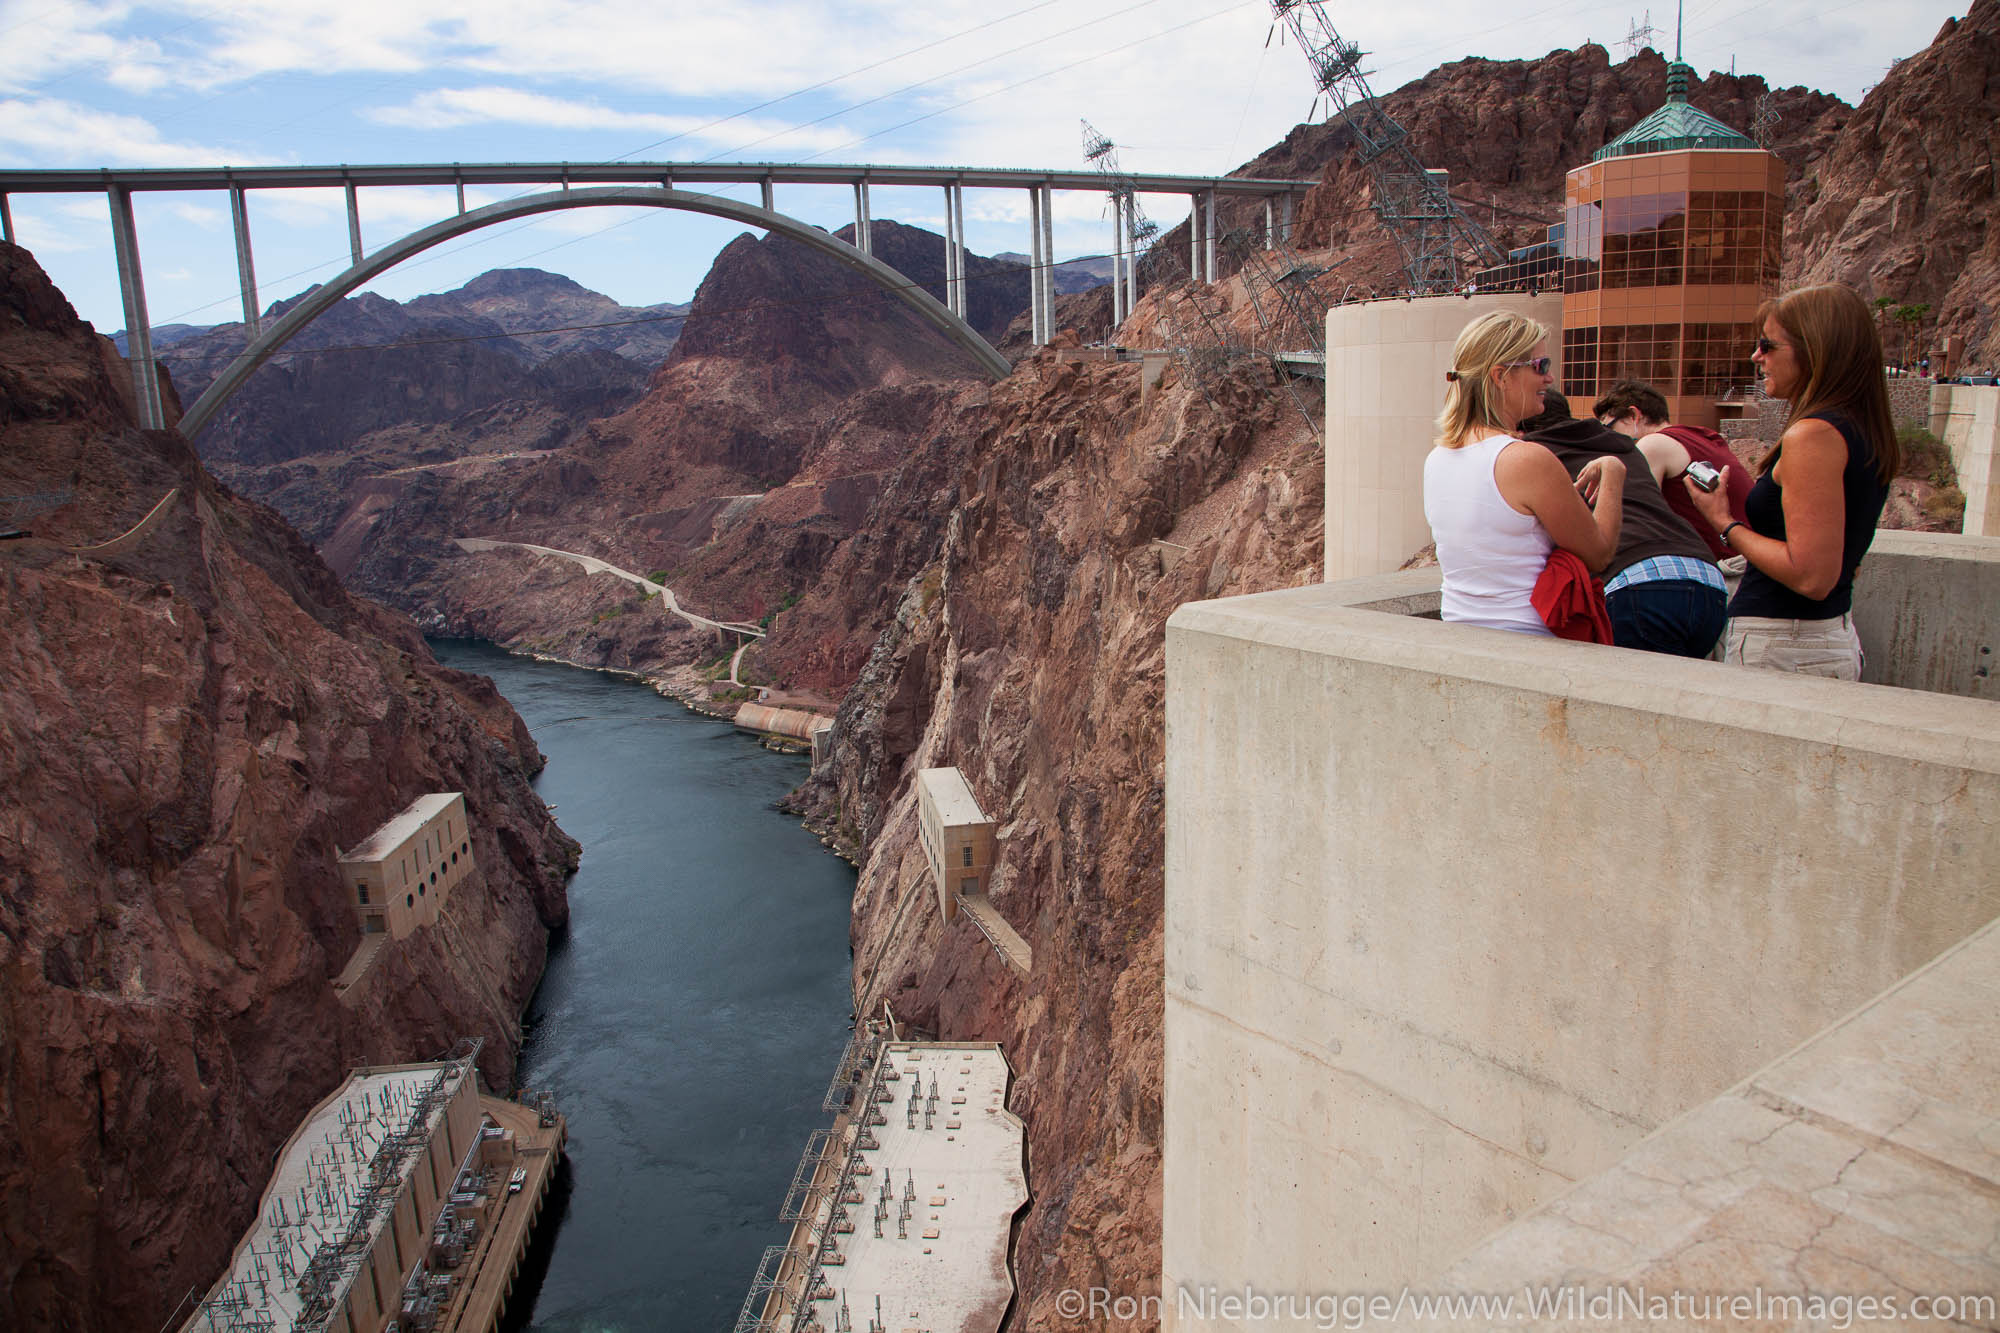 Visitors at Hoover Dam, with Mike O'Callaghan – Pat Tillman Memorial Bridge in the distance, Mojave Desert, AZ